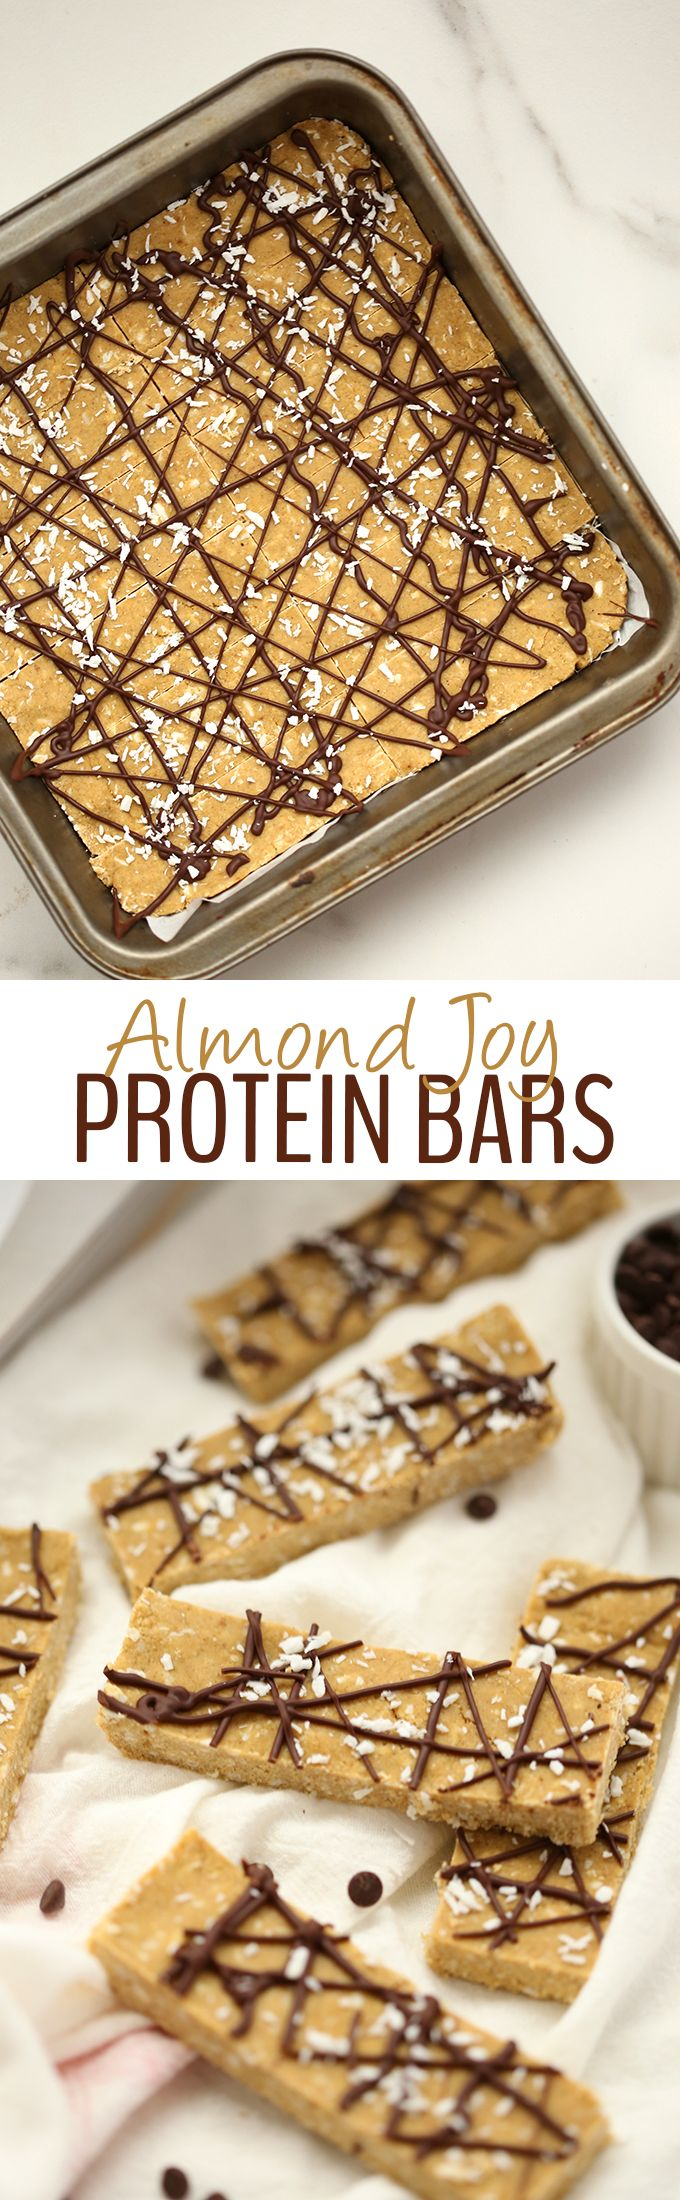 Ditch the store-bought and go for one of these Vegan Almond Joy Protein Bars instead. Made with plant-based protein powder and ready in under 30 minutes (without a food processor!) these healthy, no-bake protein bars will become your new favorite snack.